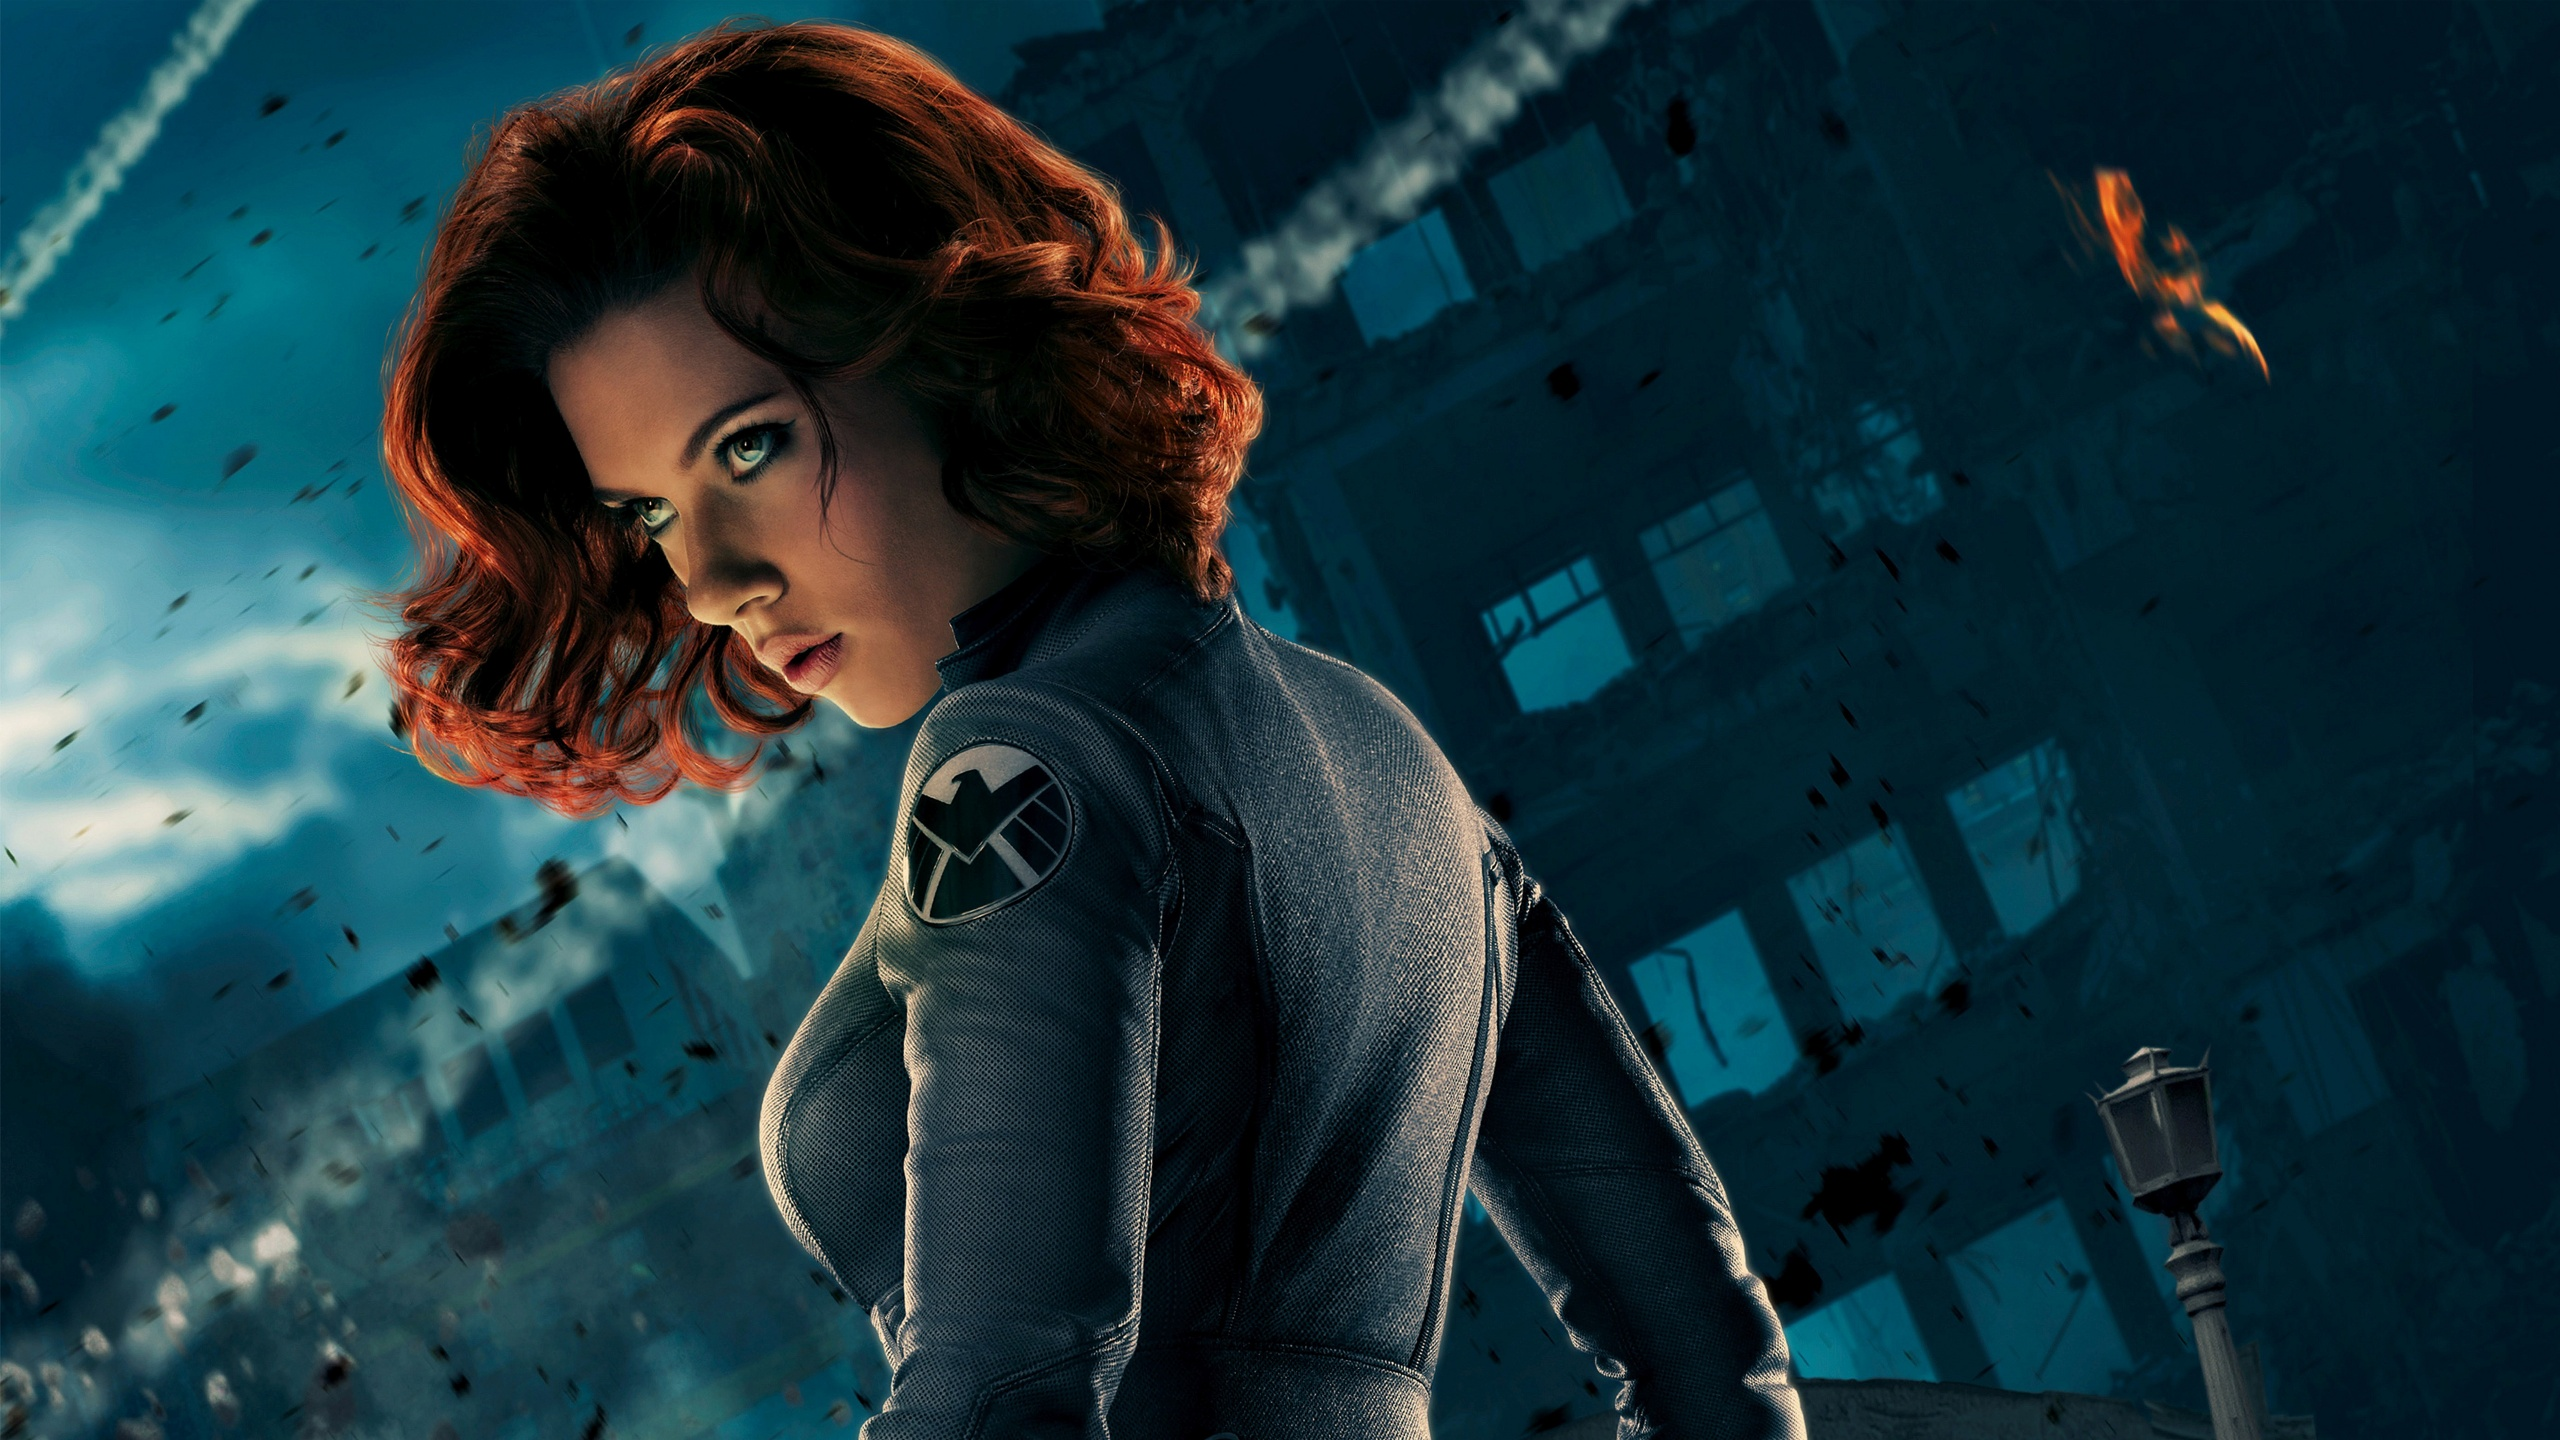 Scarlett Johansson Black Widow 5K Wallpapers | HD Wallpapers